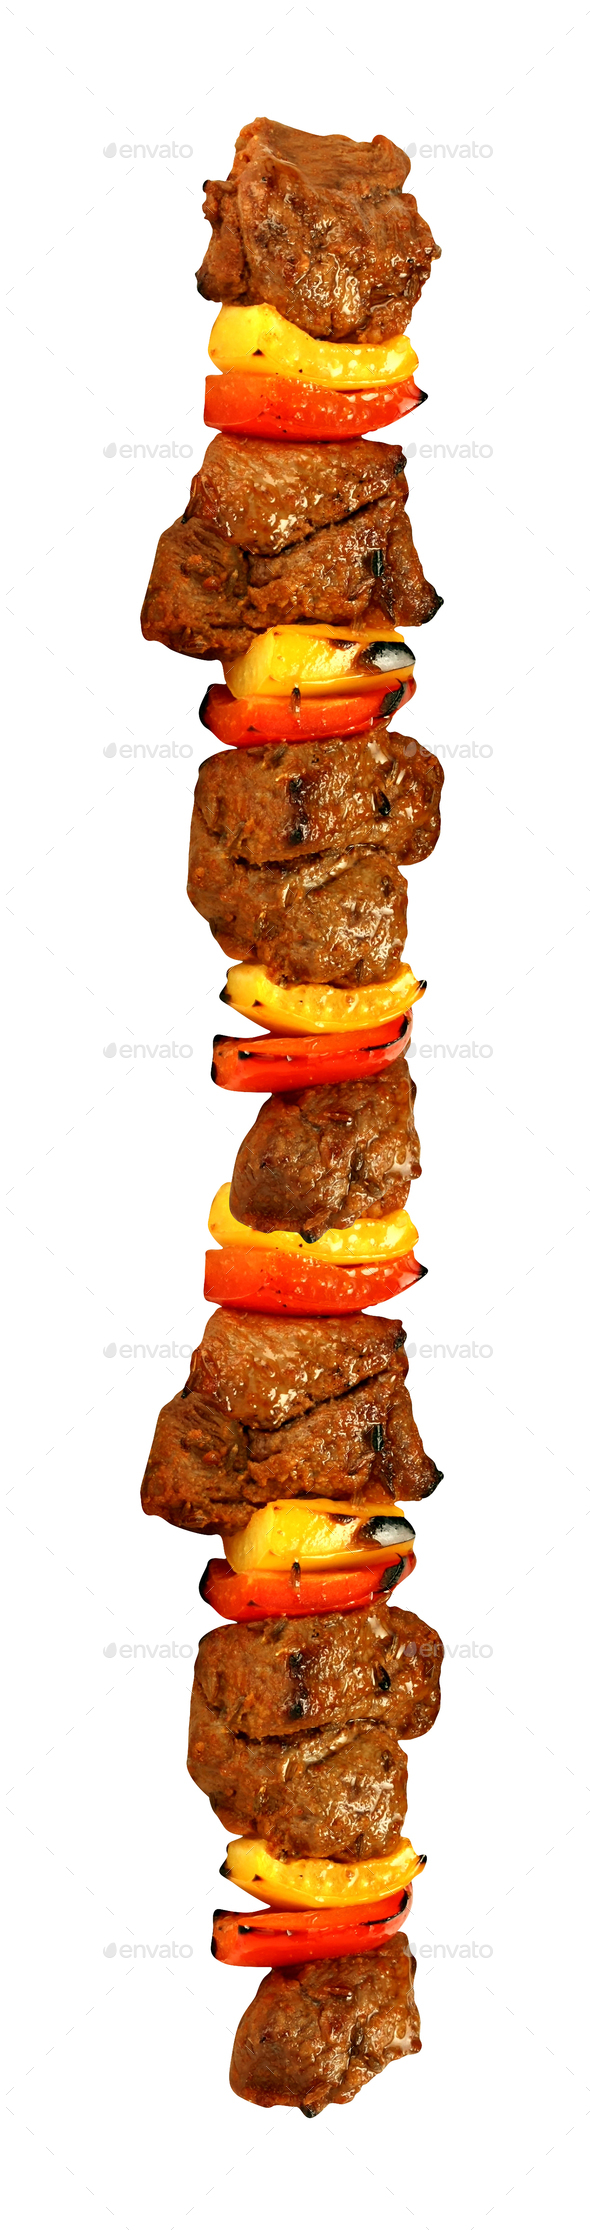 kebab isolated on white background - Stock Photo - Images